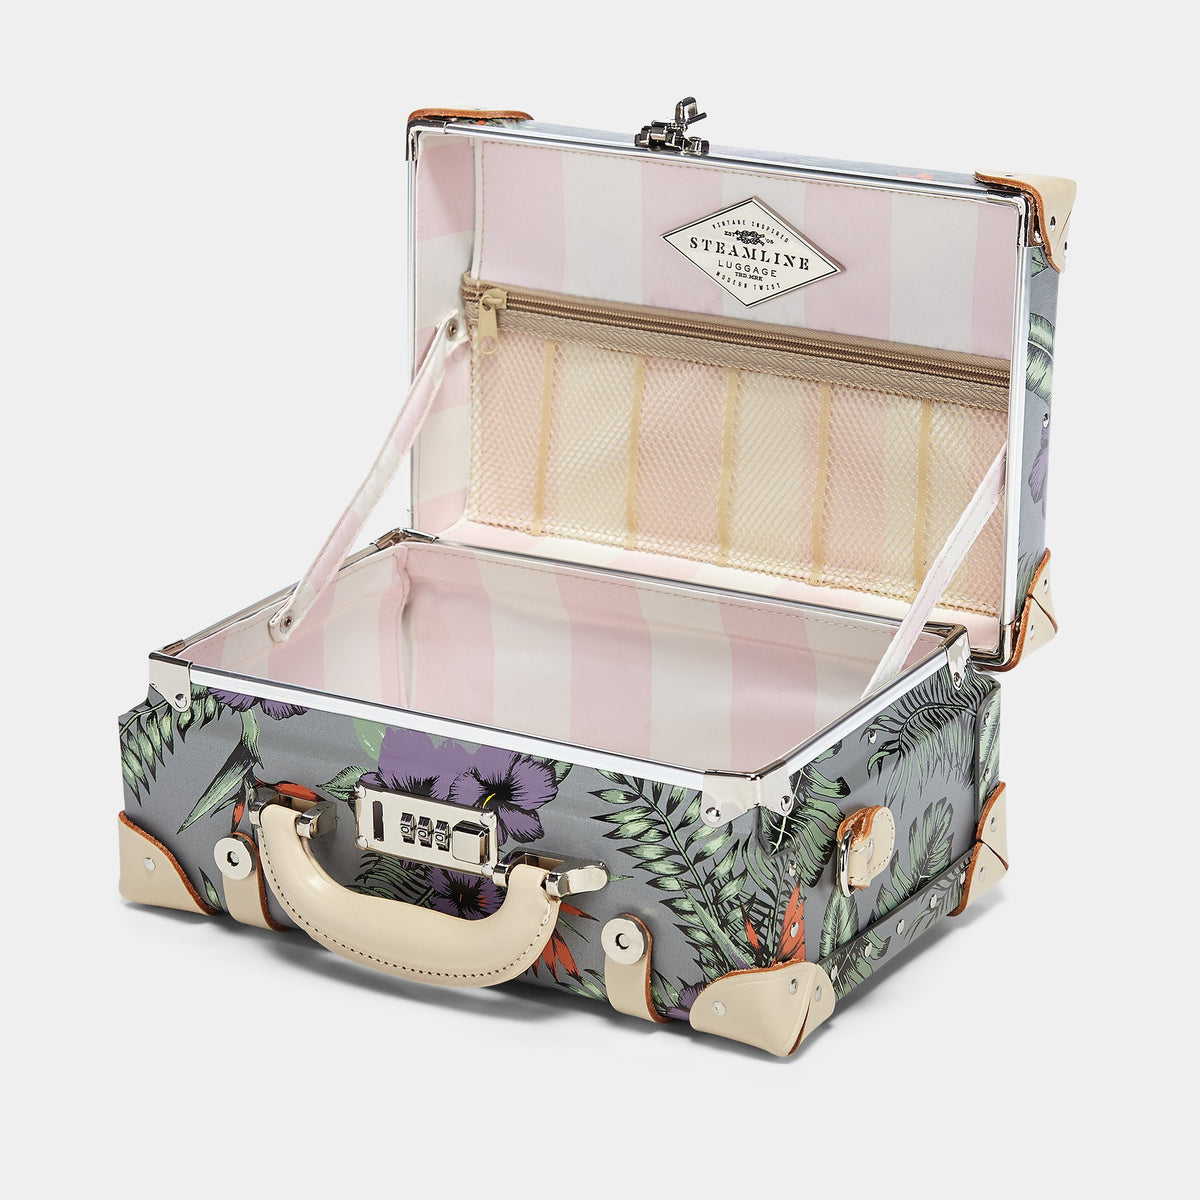 The Botanist Vanity in Grey - Vintage Inspired Vanity Case - Interior Front